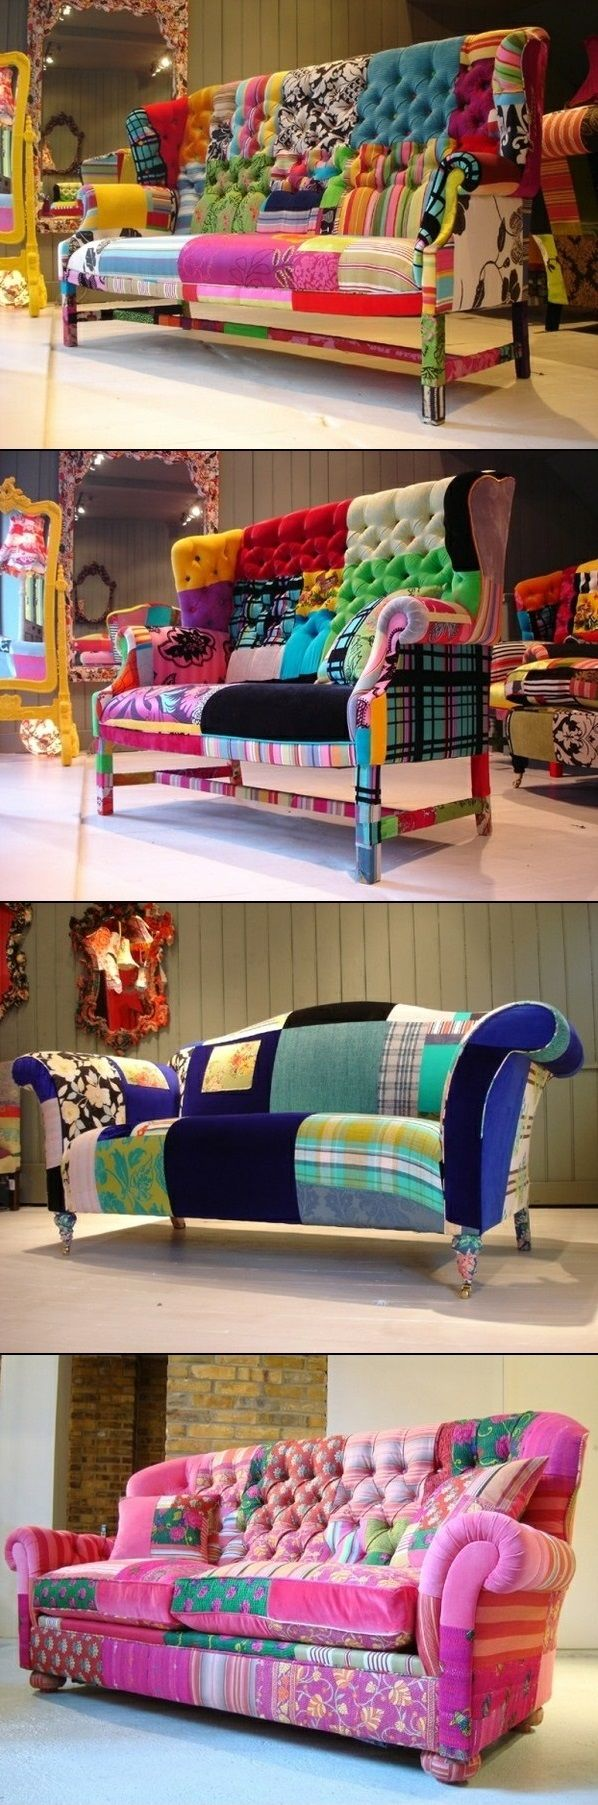 363 best overstuffed chairs and sofas images on pinterest for Kids overstuffed chair